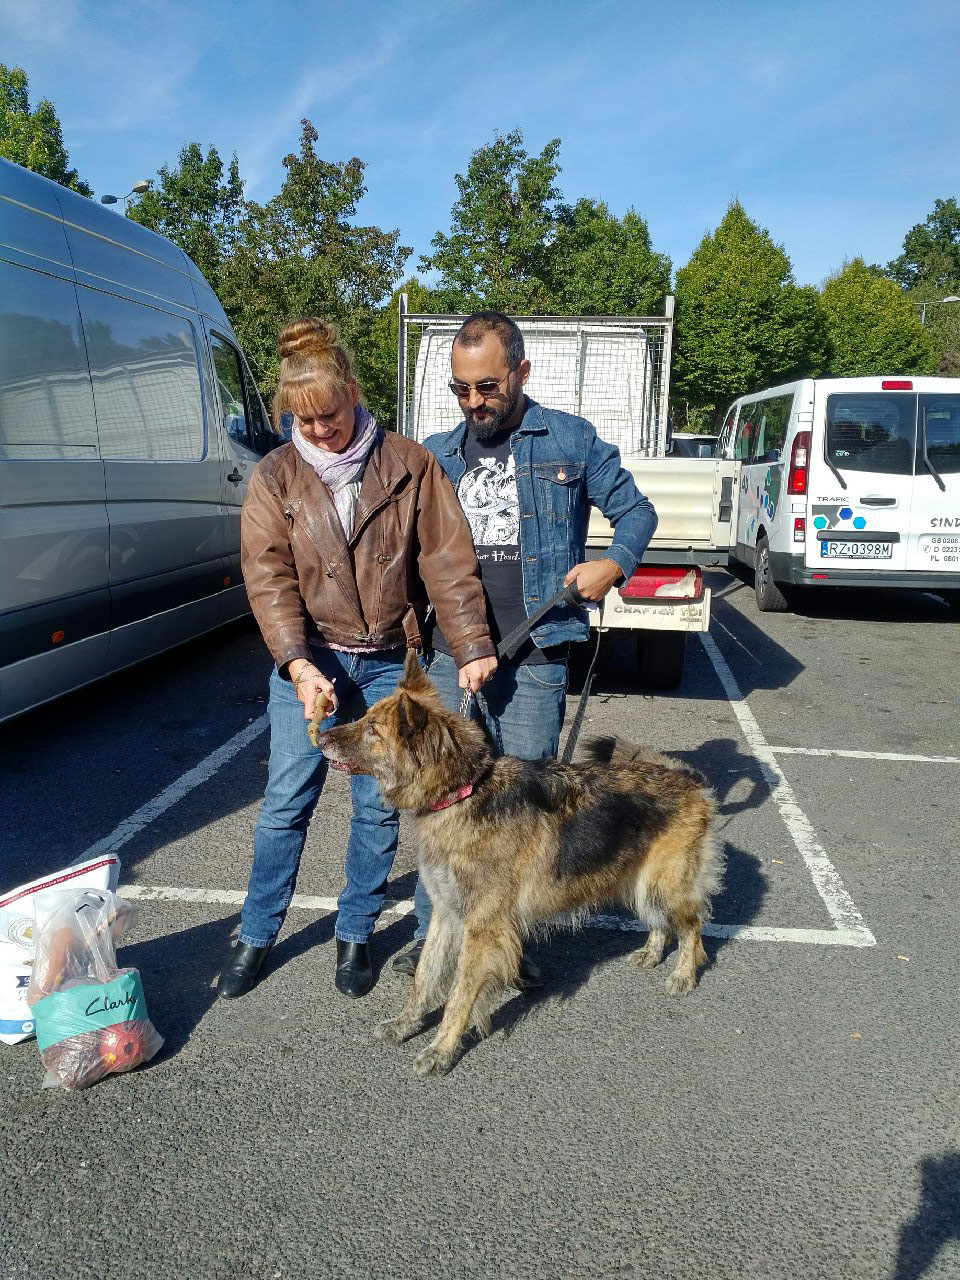 We collected Angel from her owners at Maidstone Services, on our way to the coast